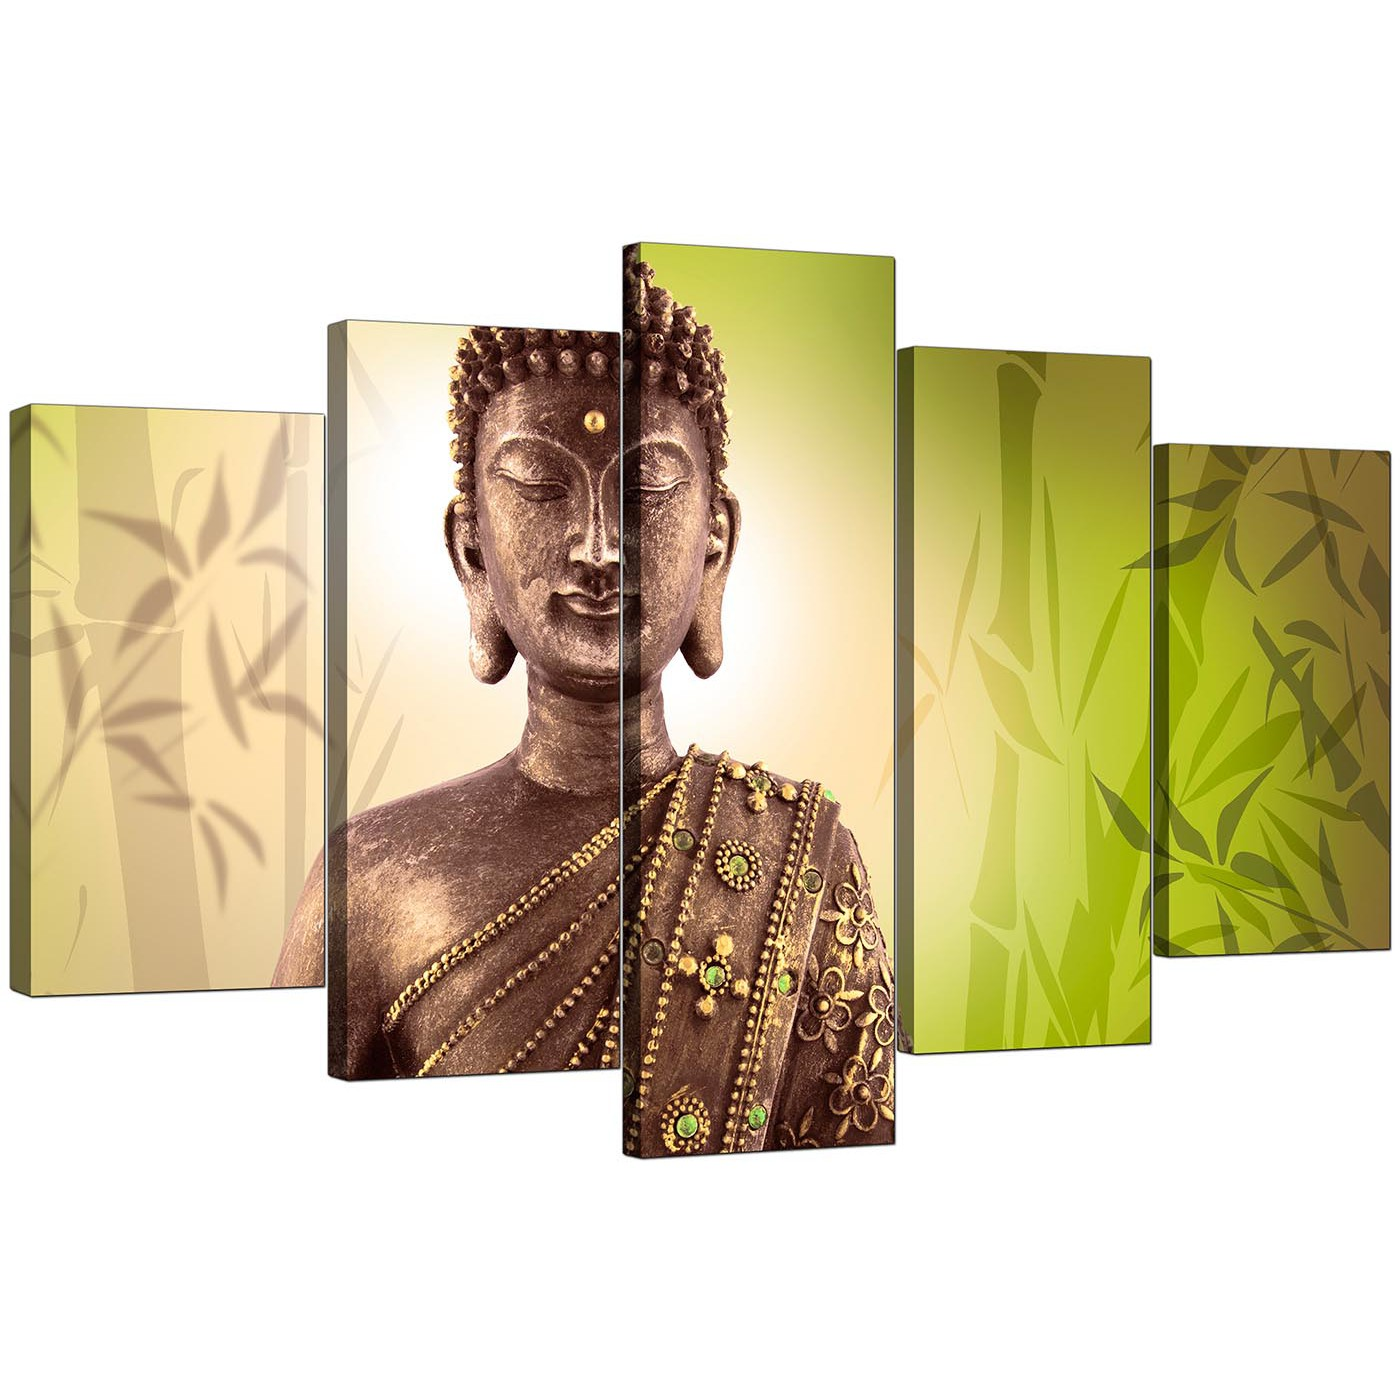 Extra Large Buddha Canvas Wall Art 5 Piece In Green